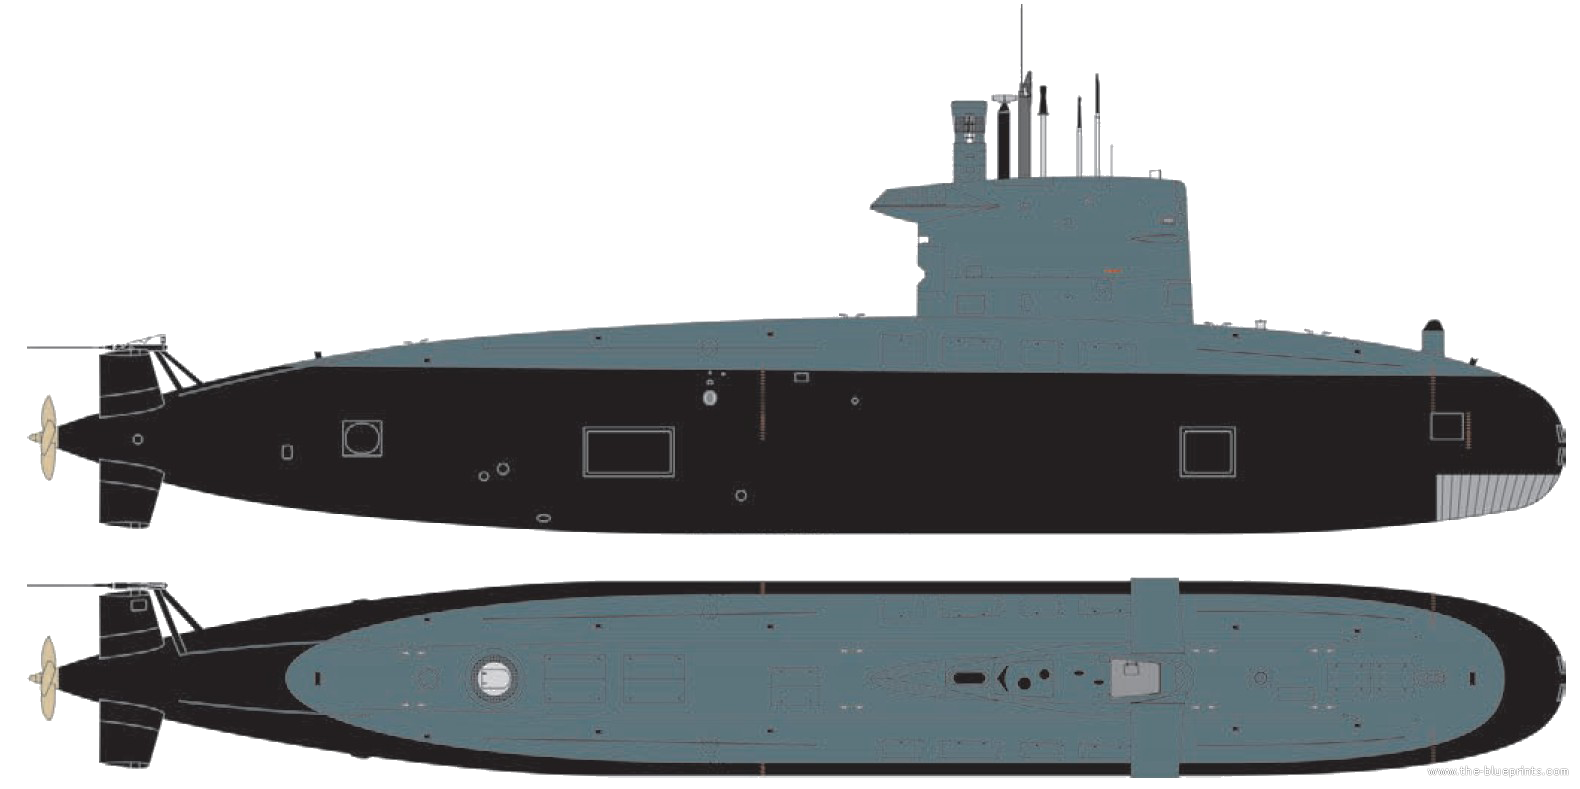 medium resolution of the walrus class hull above diagram from blueprints may be only slightly modified for a replacement submarine if there is some swedish design influence